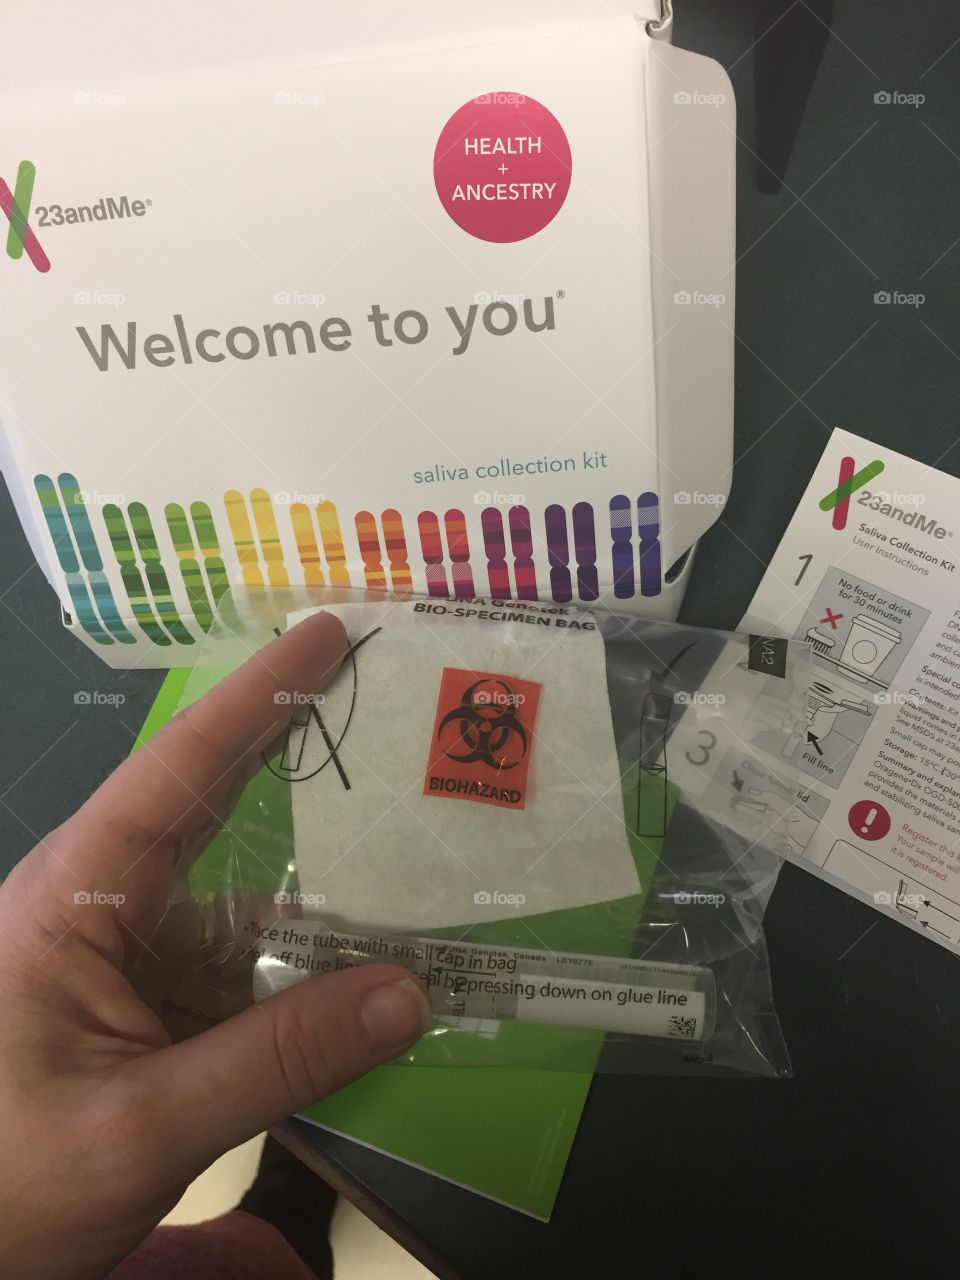 Mailing in my 23 and me DNA kit.